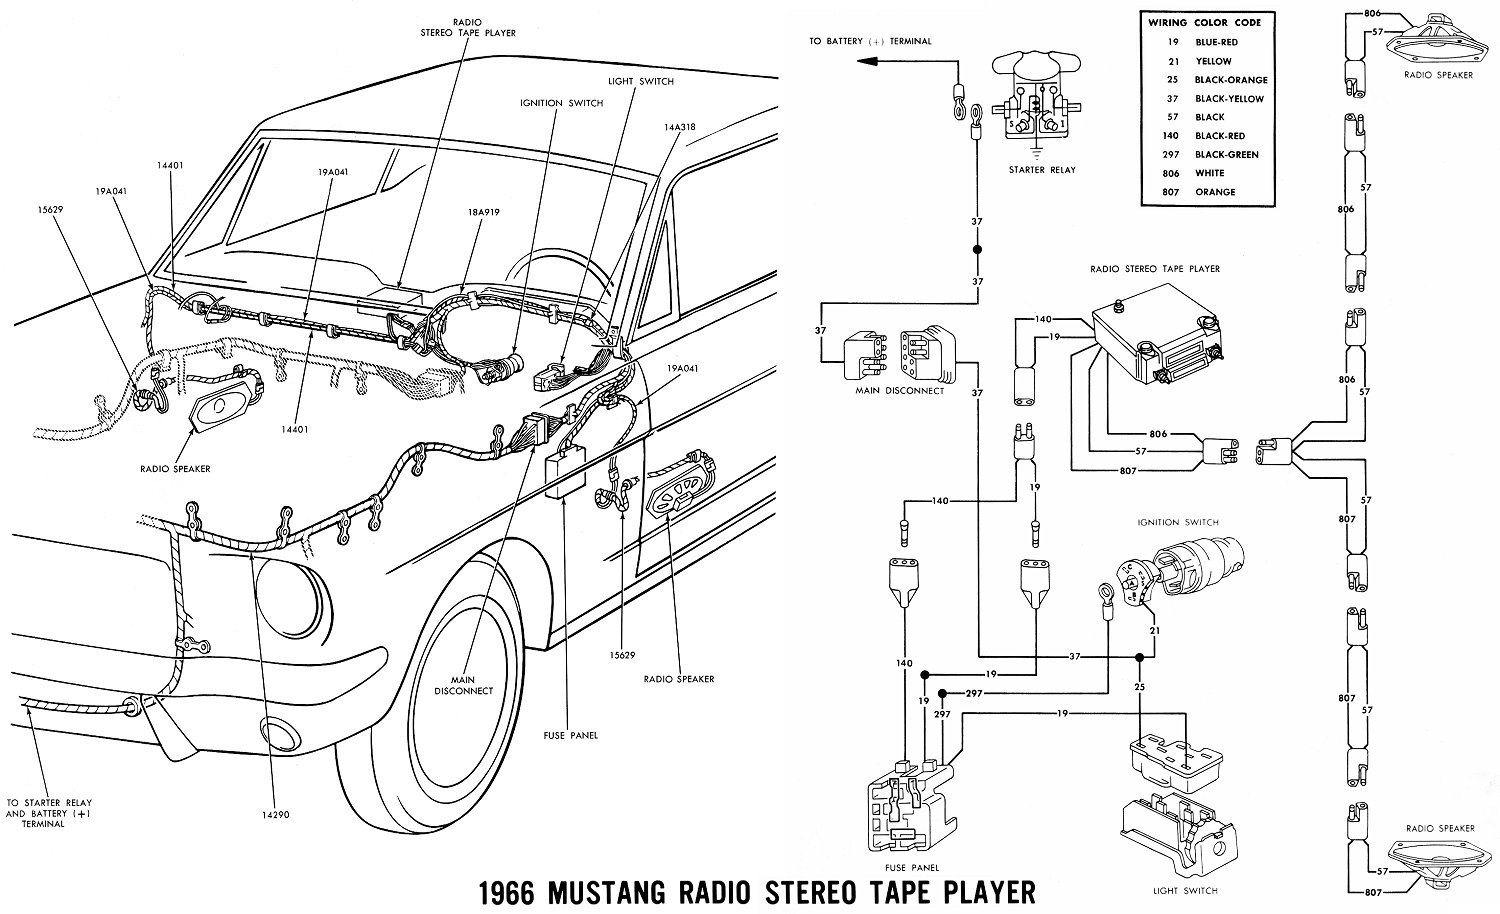 1966 mustang wiring diagrams average joe restoration rh averagejoerestoration com 1966 mustang wiring diagram color 1966 mustang wiring diagram manual